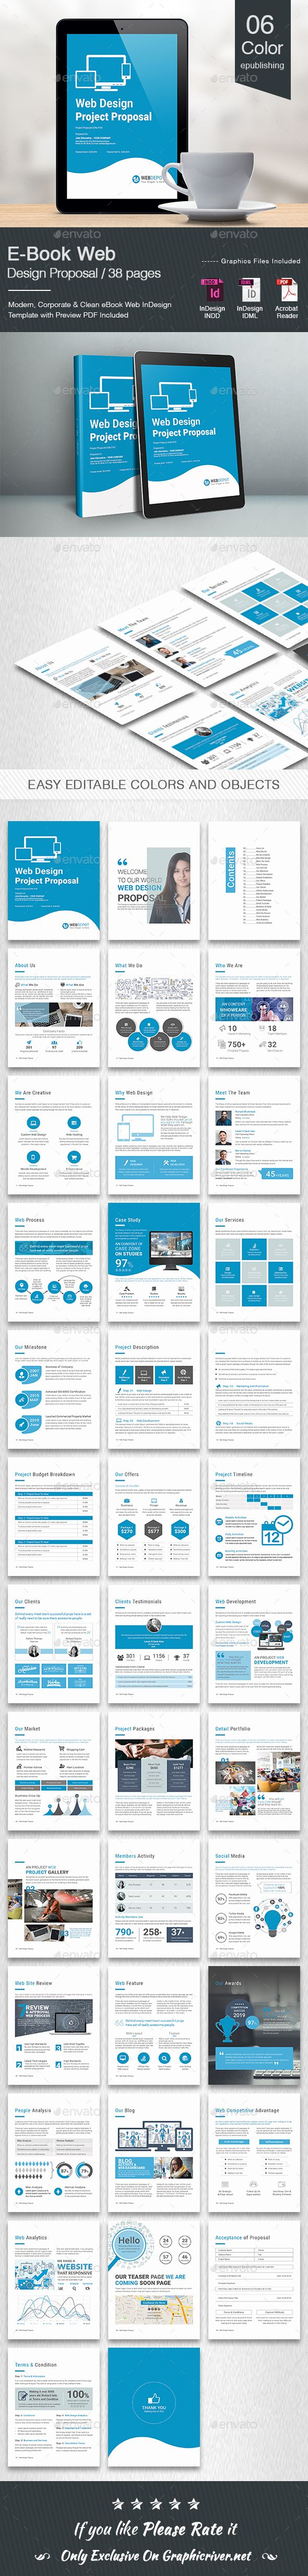 E-Book Web Design Proposal Template InDesign INDD • 38 Pages Design